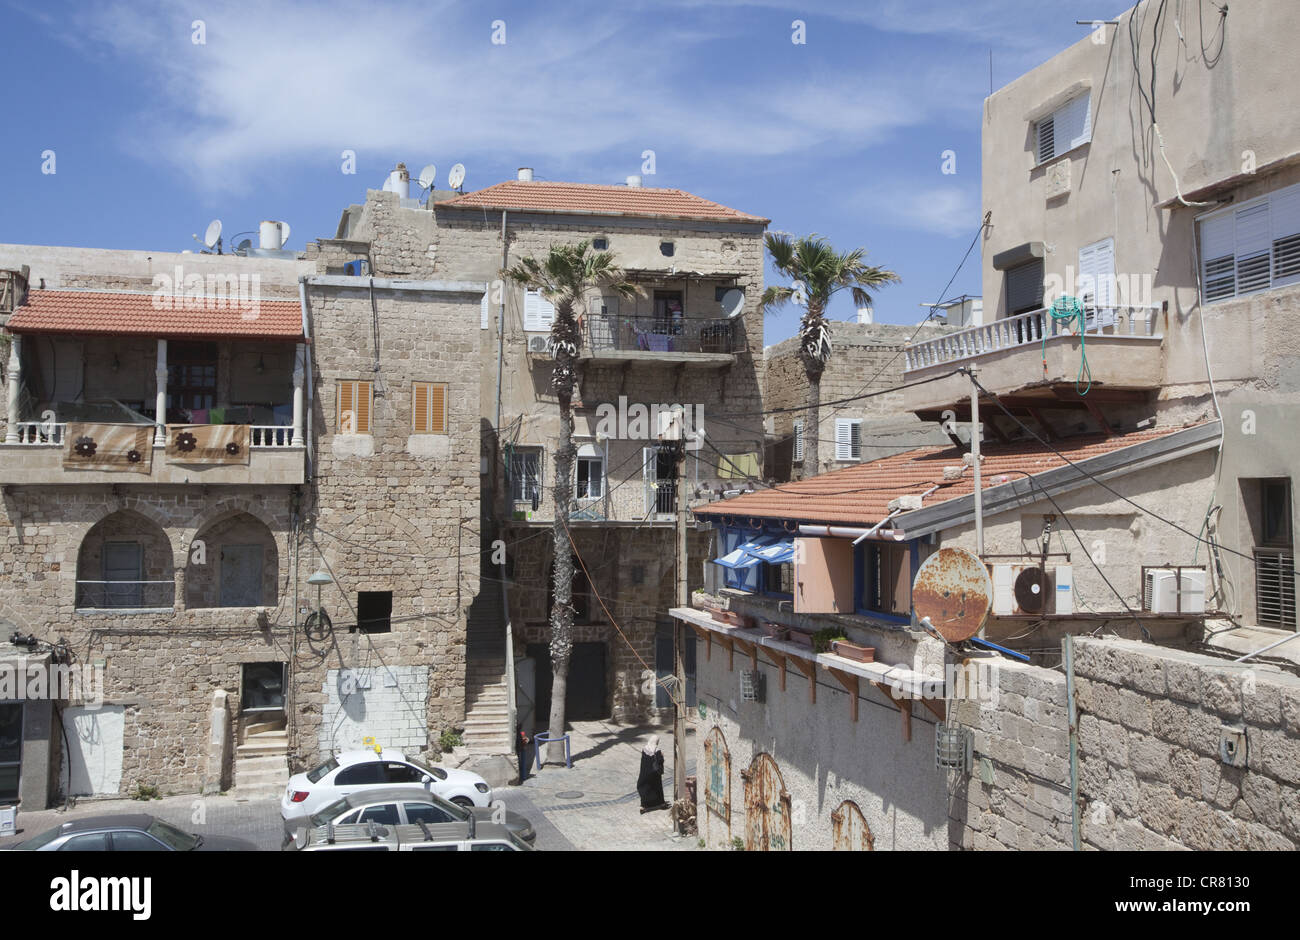 Dwellings in the Old City of Acre, Israel - Stock Image